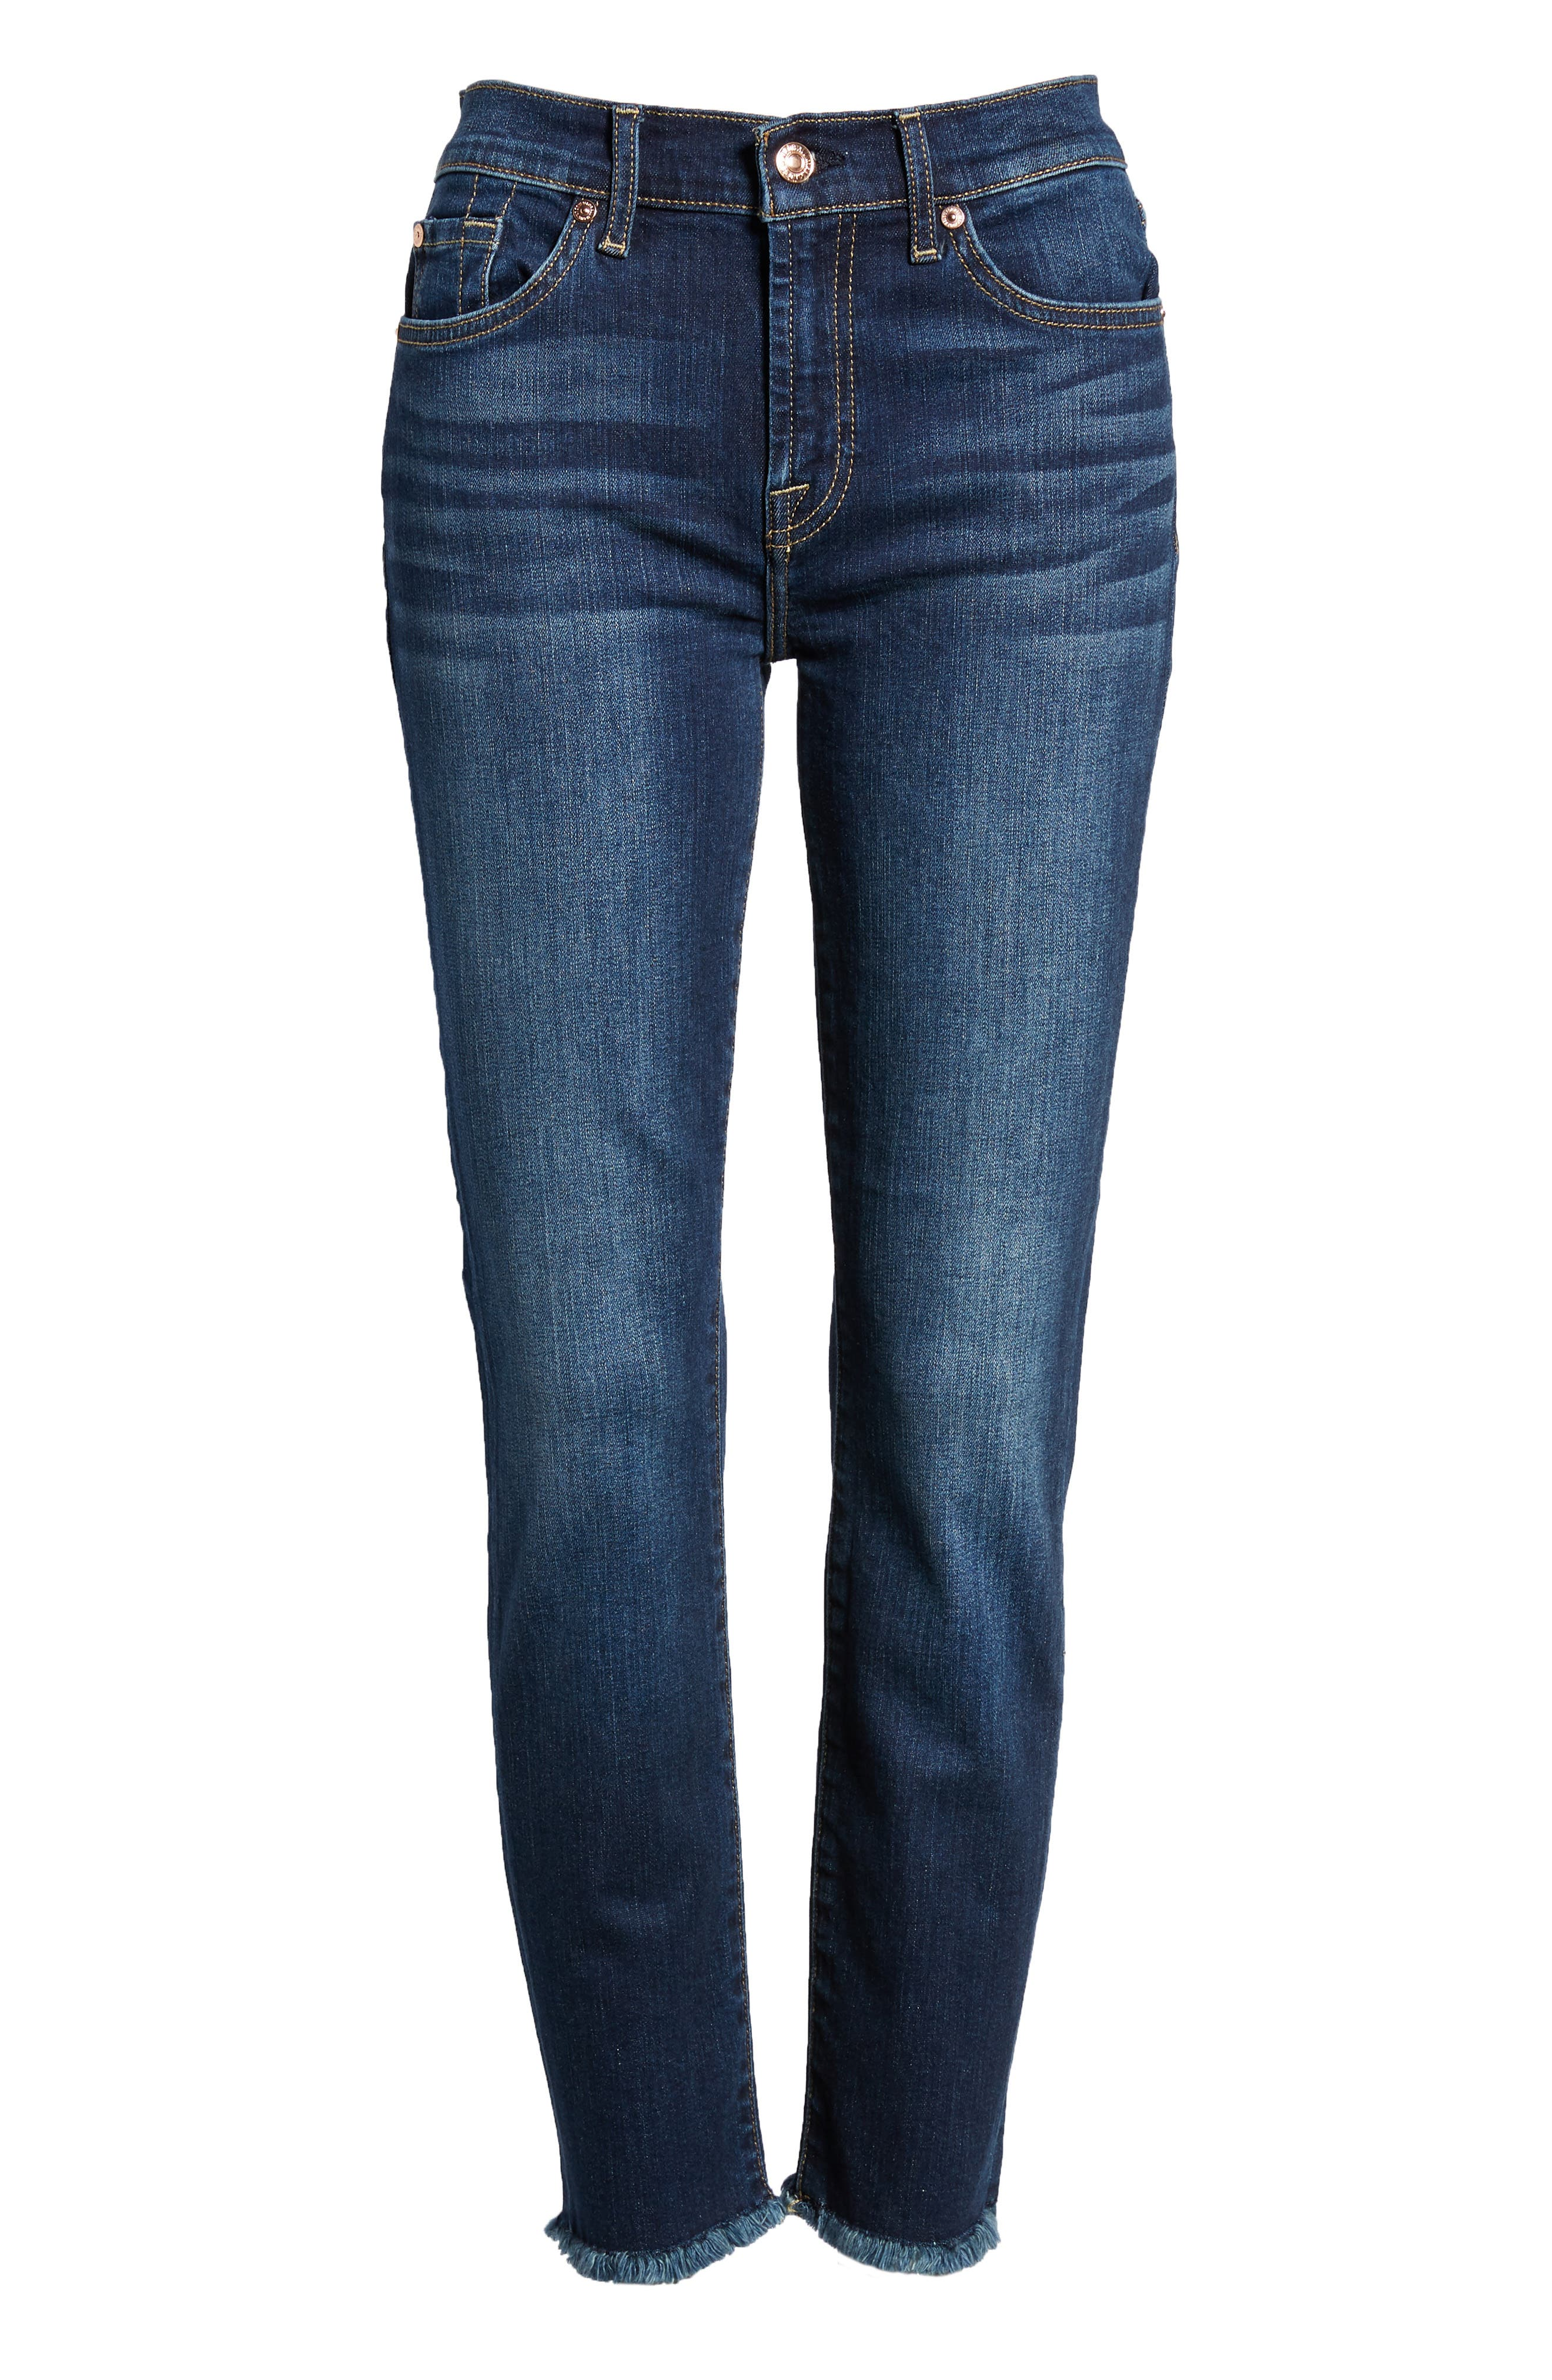 b(air) Roxanne Frayed Ankle Slim Jeans,                             Alternate thumbnail 7, color,                             AUTHENTIC FATE